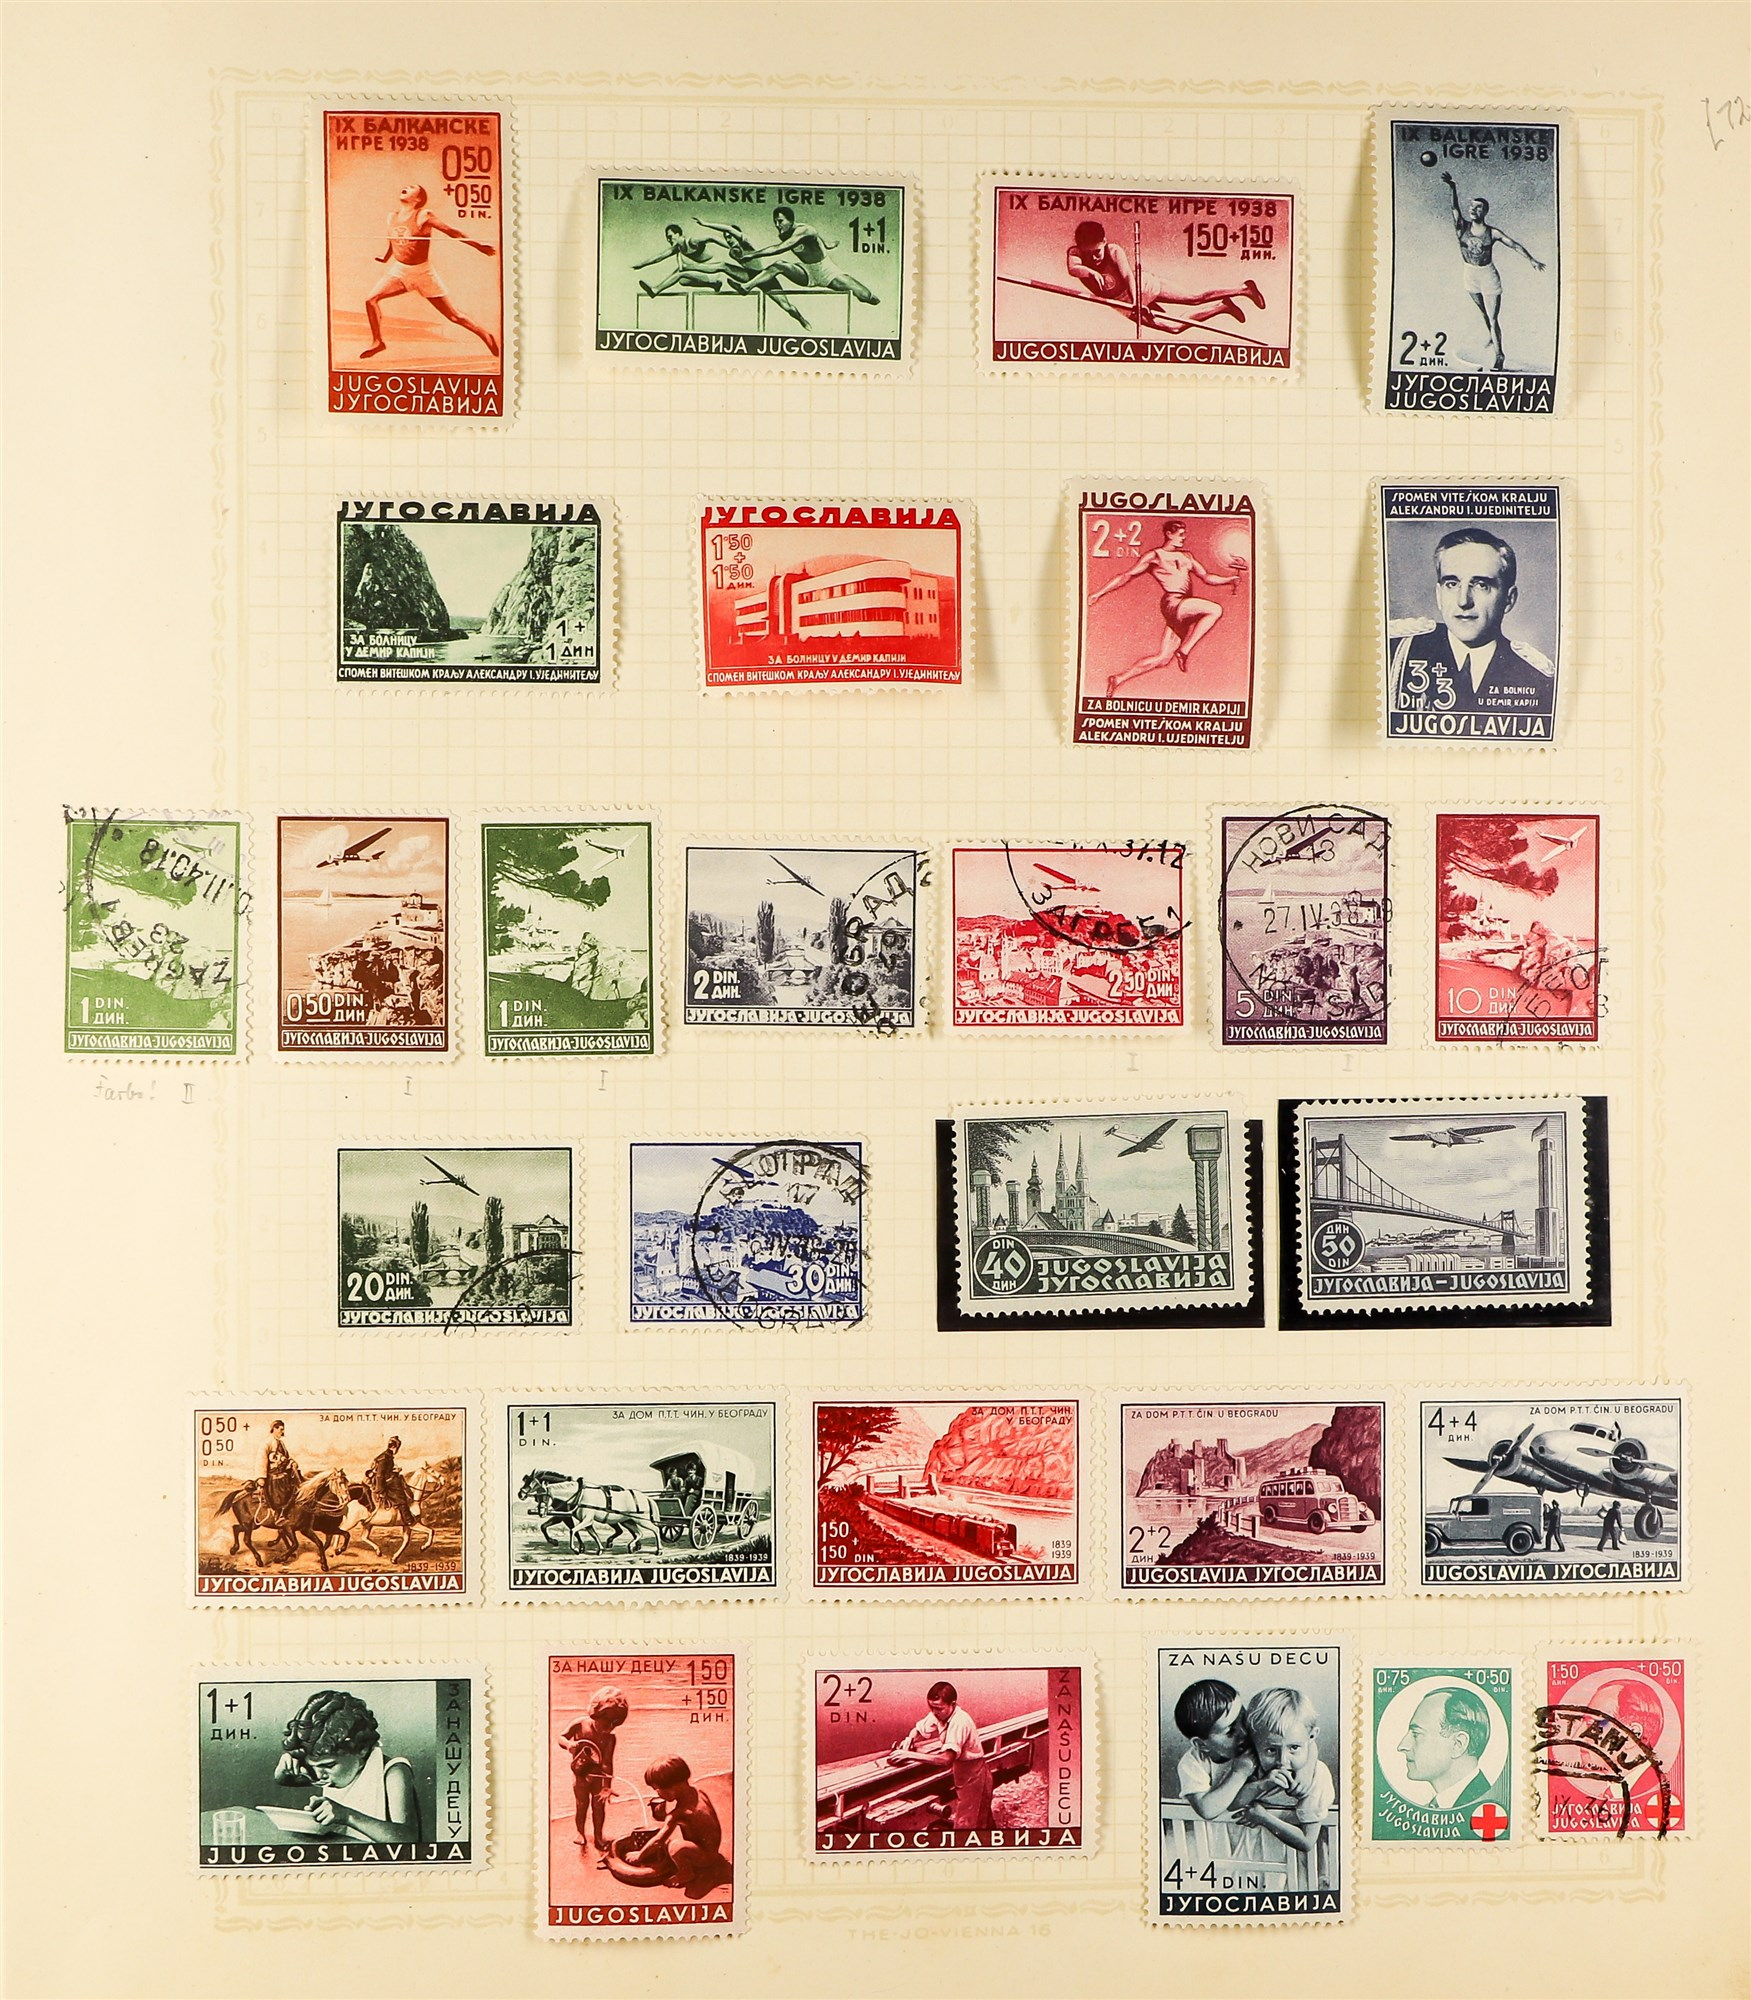 YUGOSLAVIA 1919-80 COLLECTION of mint and used issues in an album, incl. extensive Chainbreakers, - Image 13 of 17